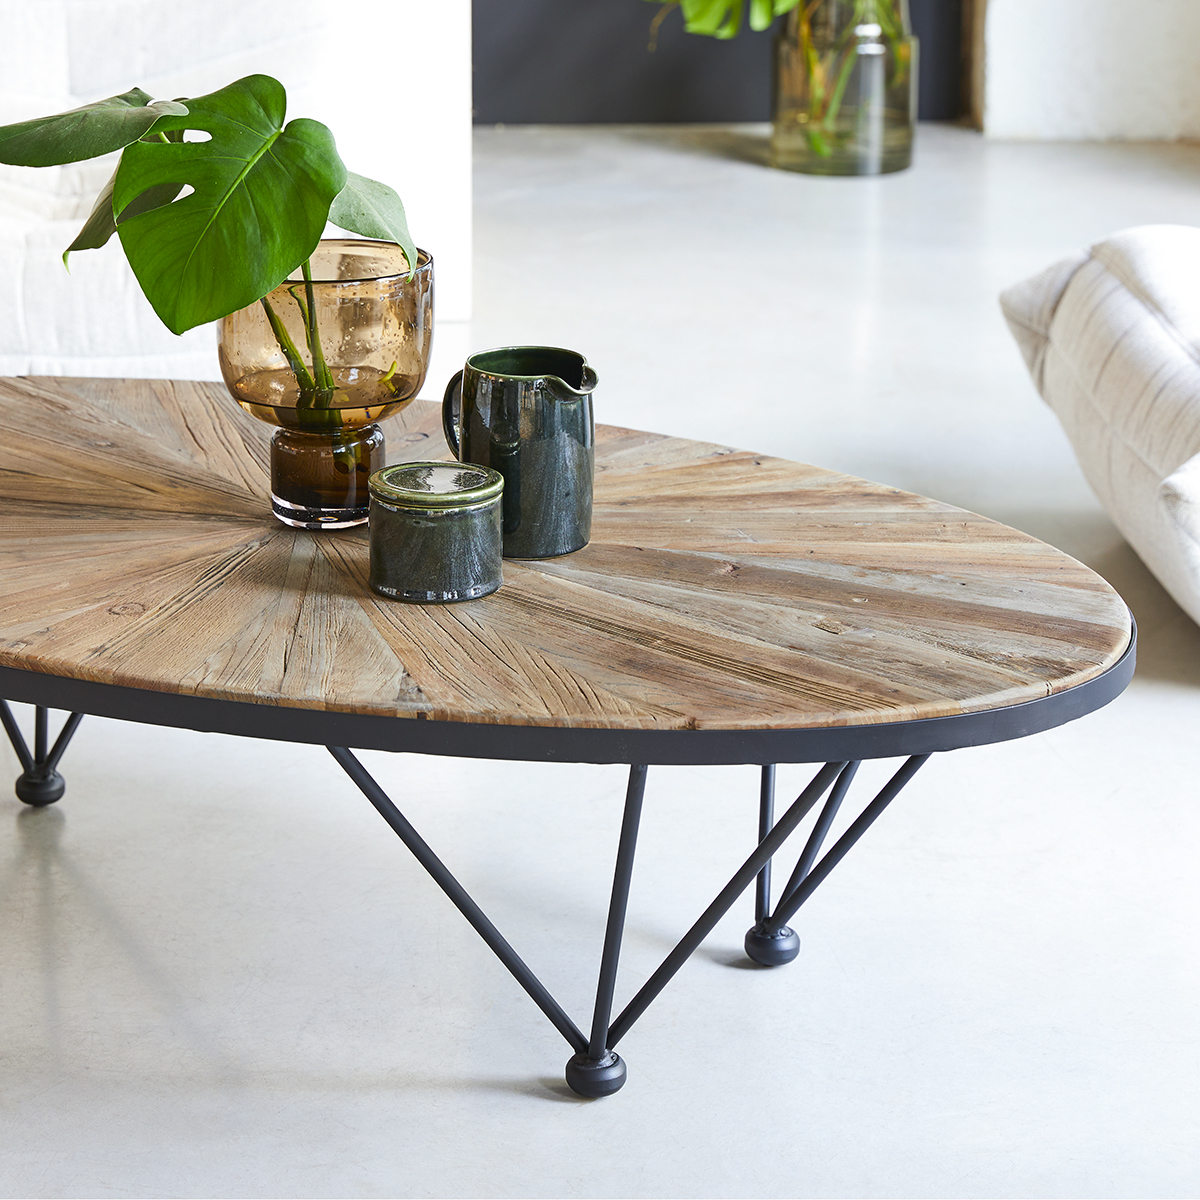 Lancelot solid elm and metal Coffee Table